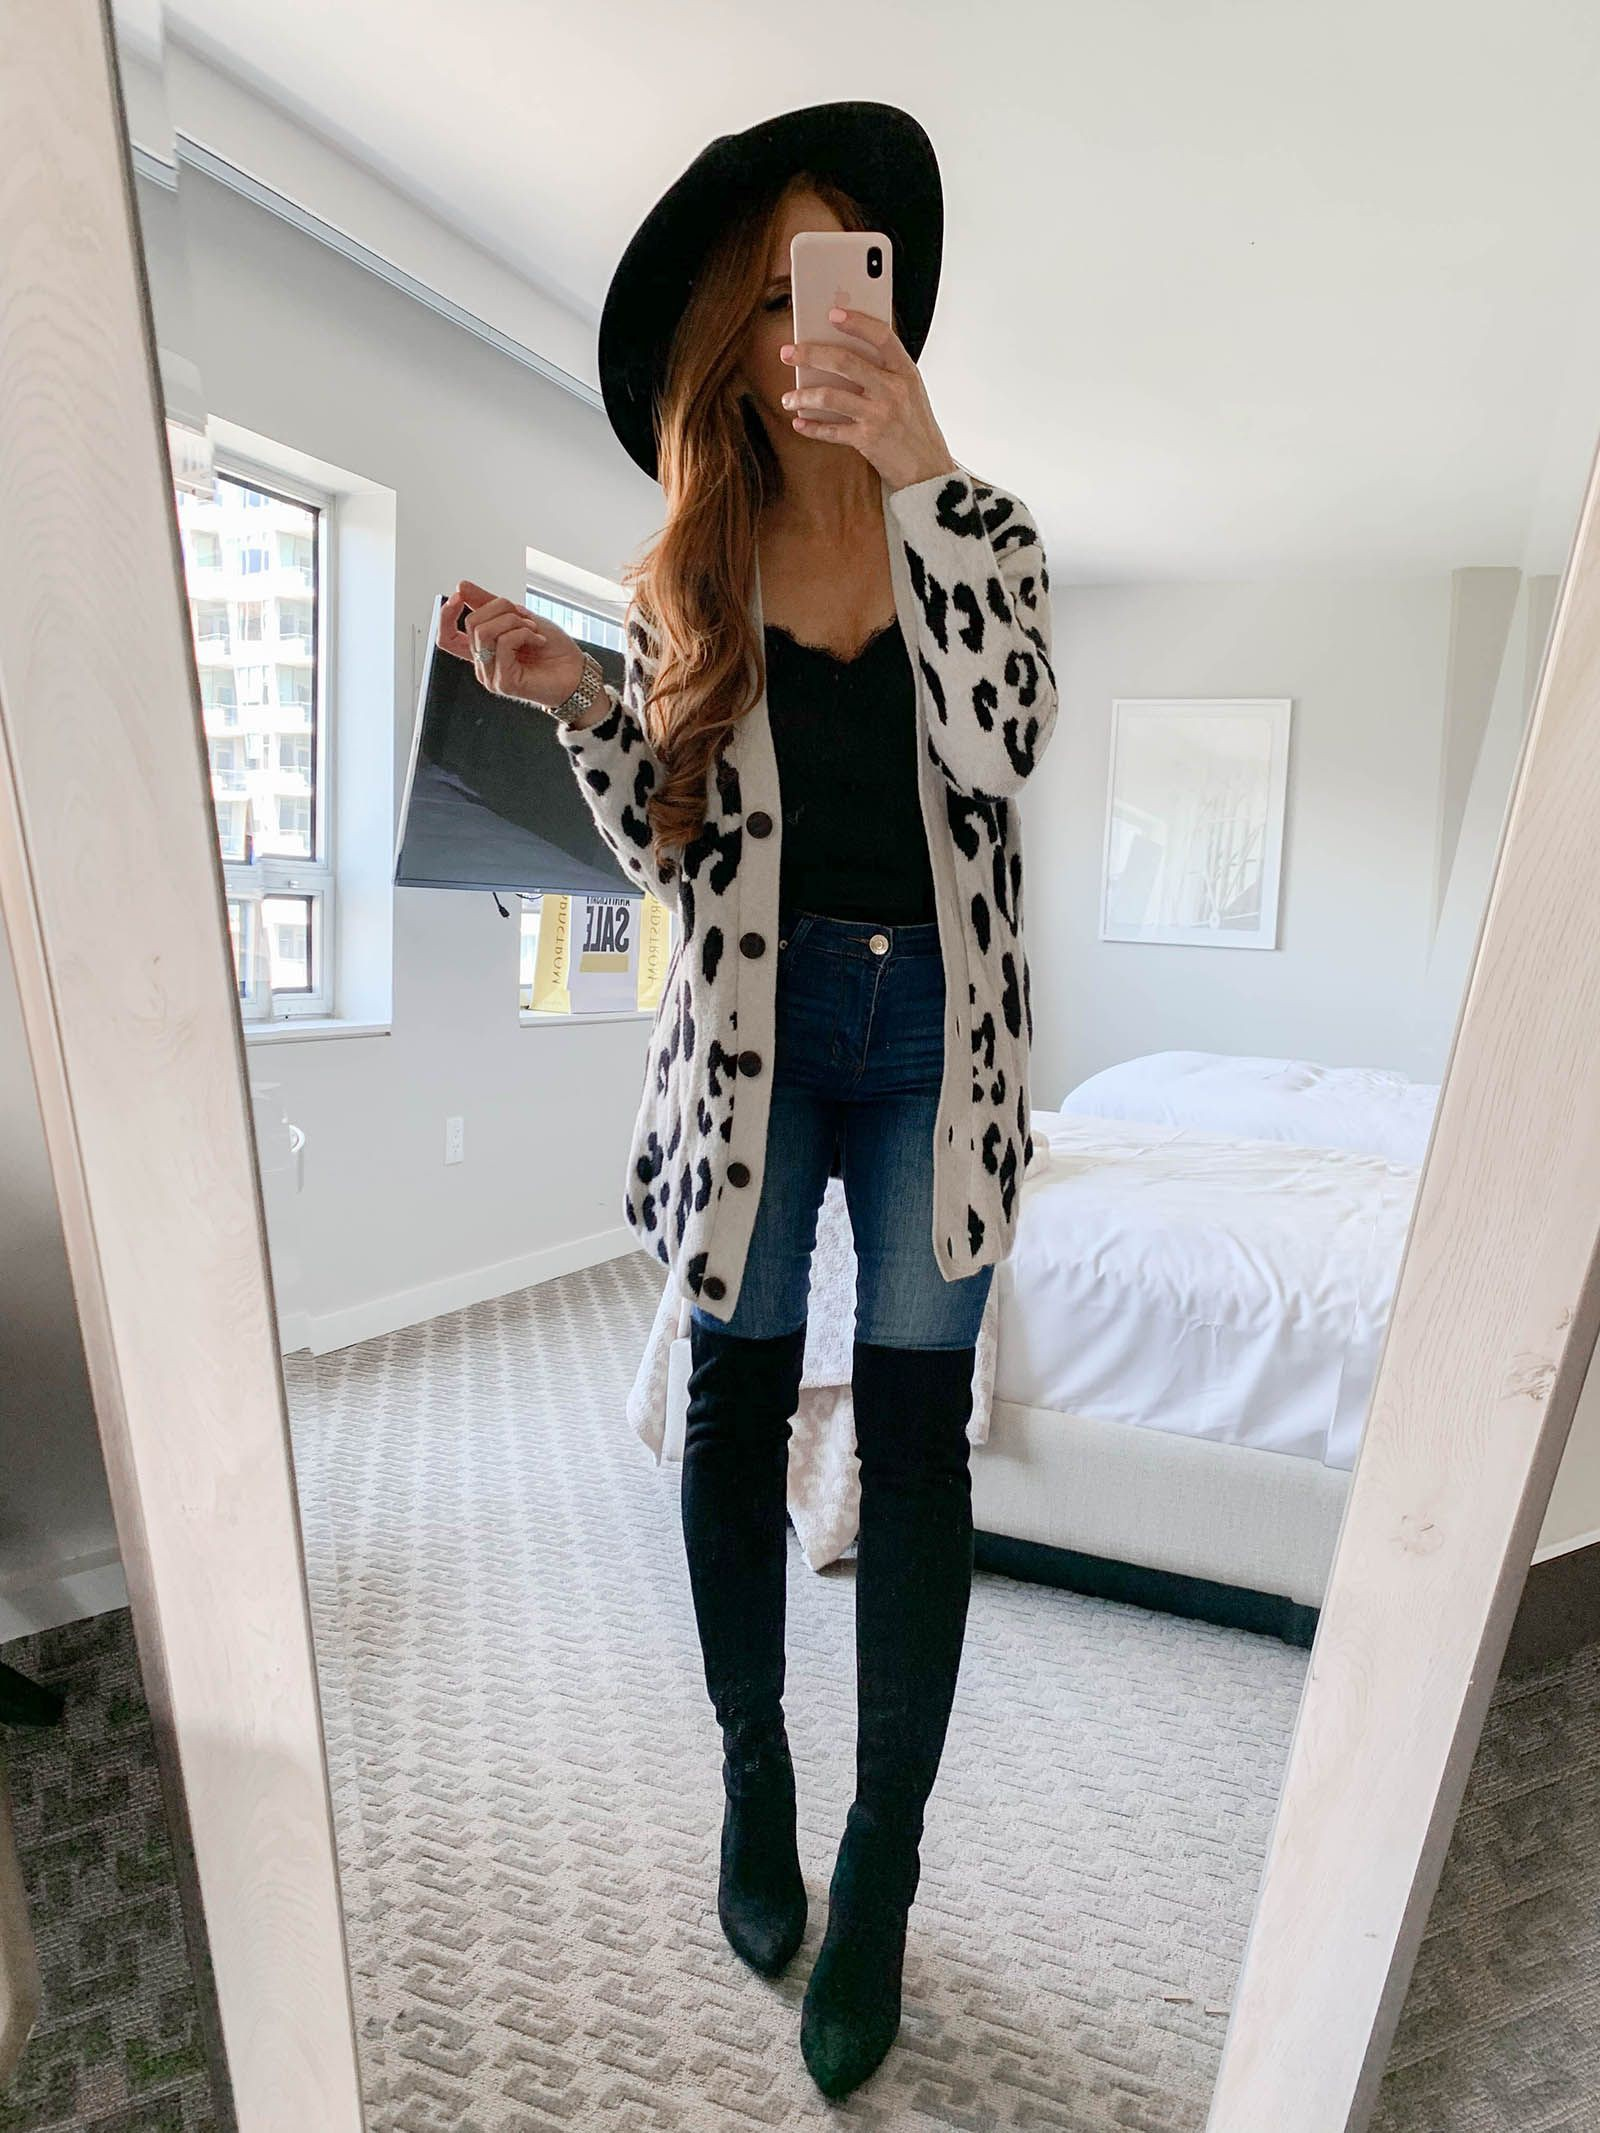 Classy outfit with trousers, leggings, blazer